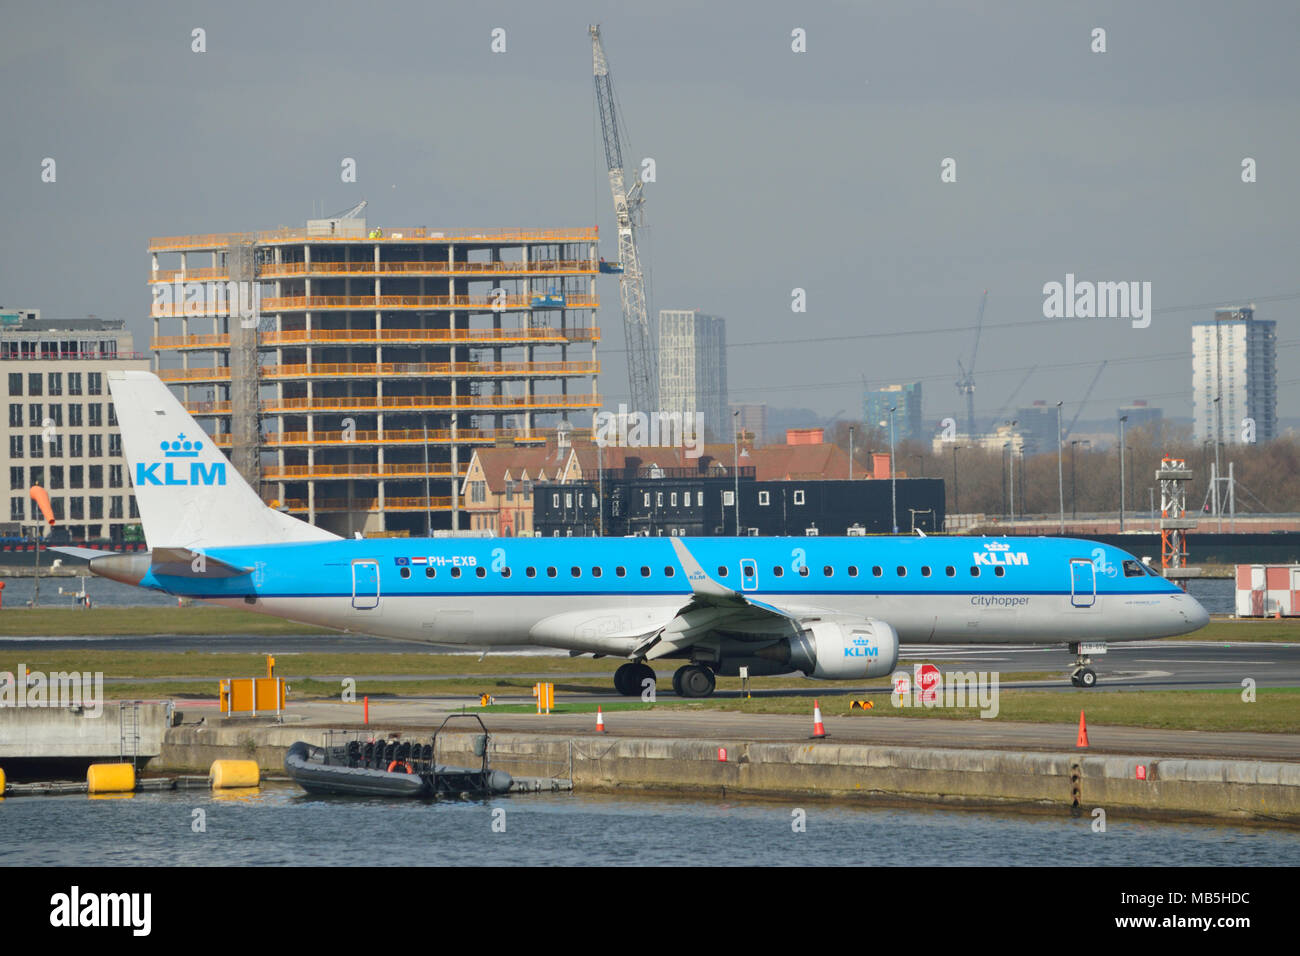 KLM Cityhopper Embraer 190 aircraft taxiing at London City Airport - Stock Image